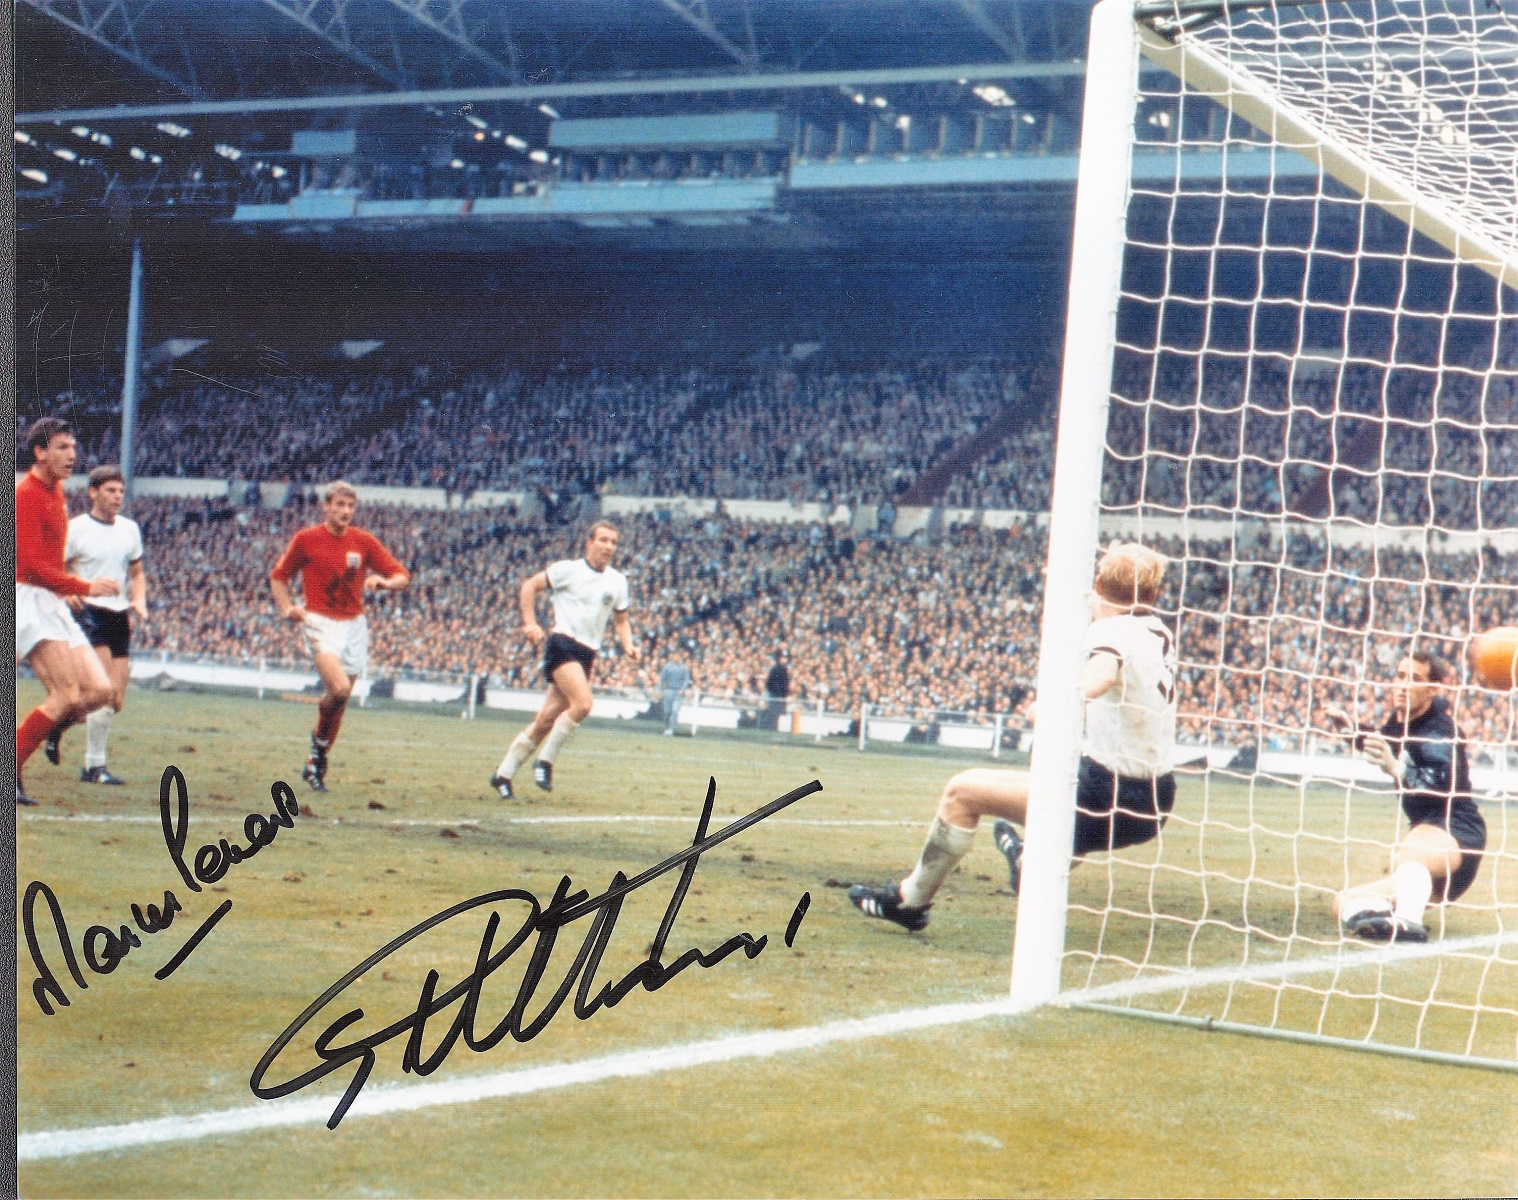 Football. Martin Peters and Geoff Hurst Signed 10x8 colour photo. Photo shows the pair in action